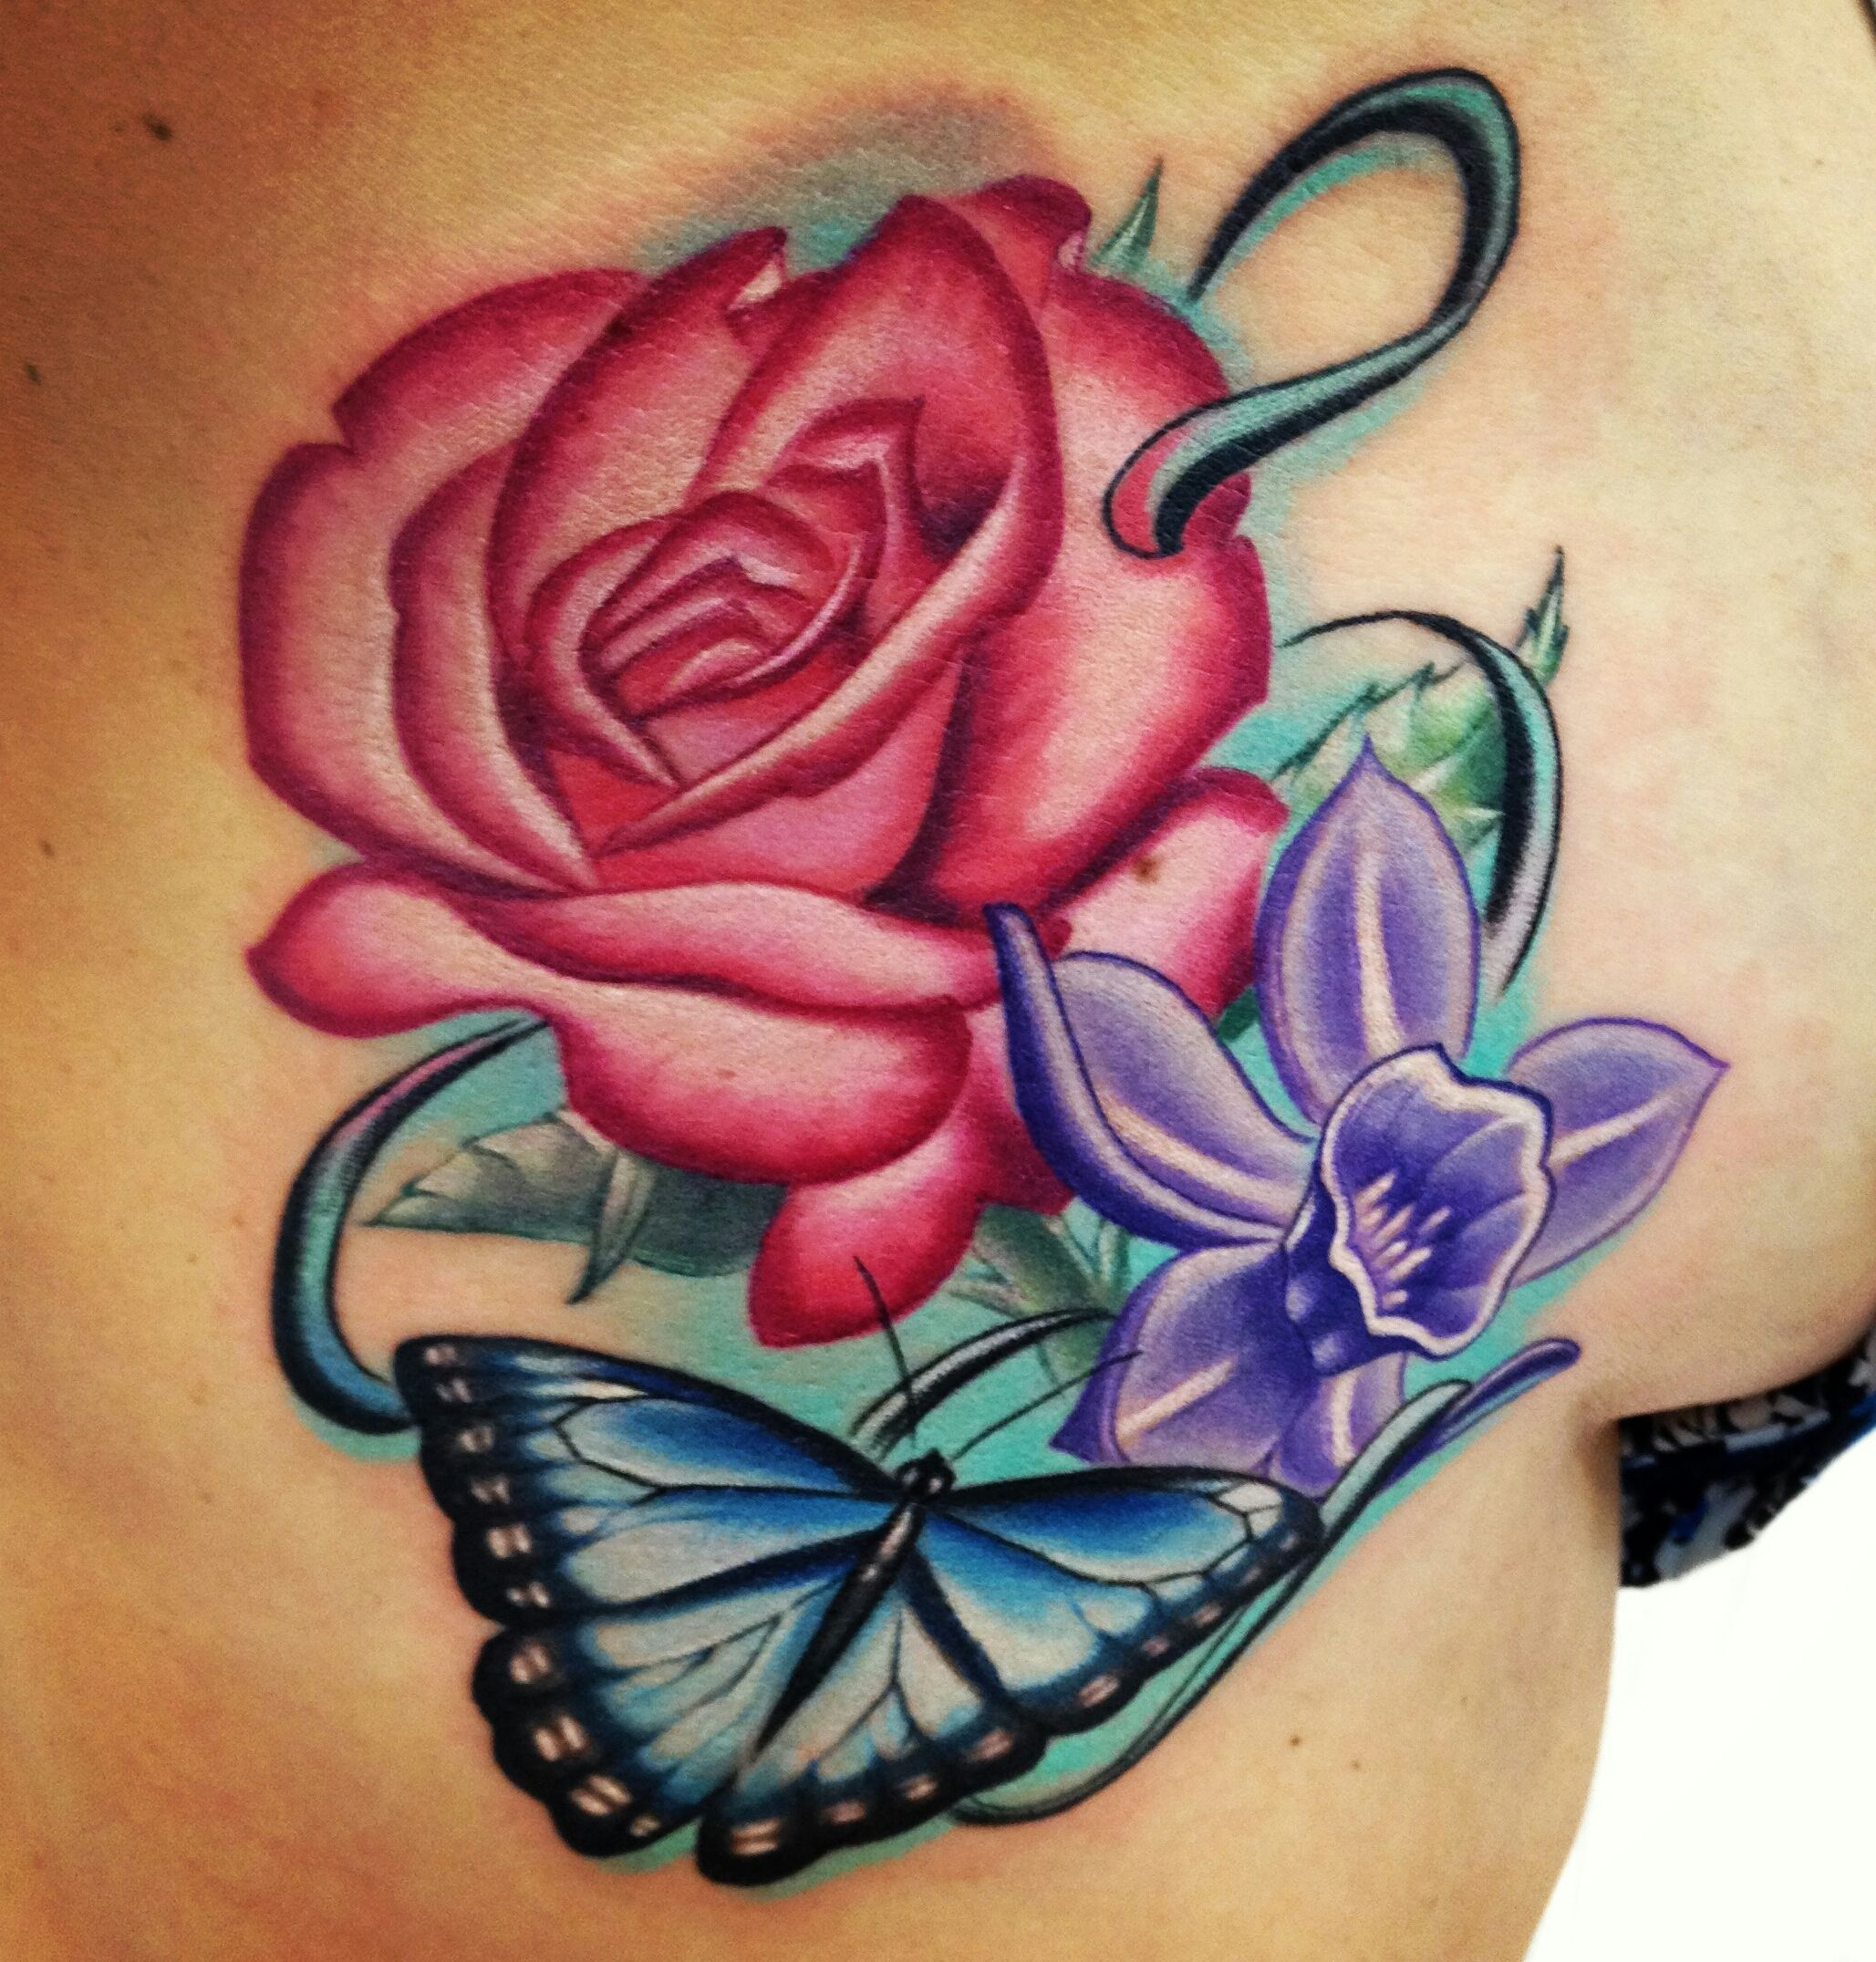 Birth flower tattoo on ribs. The rose for June and